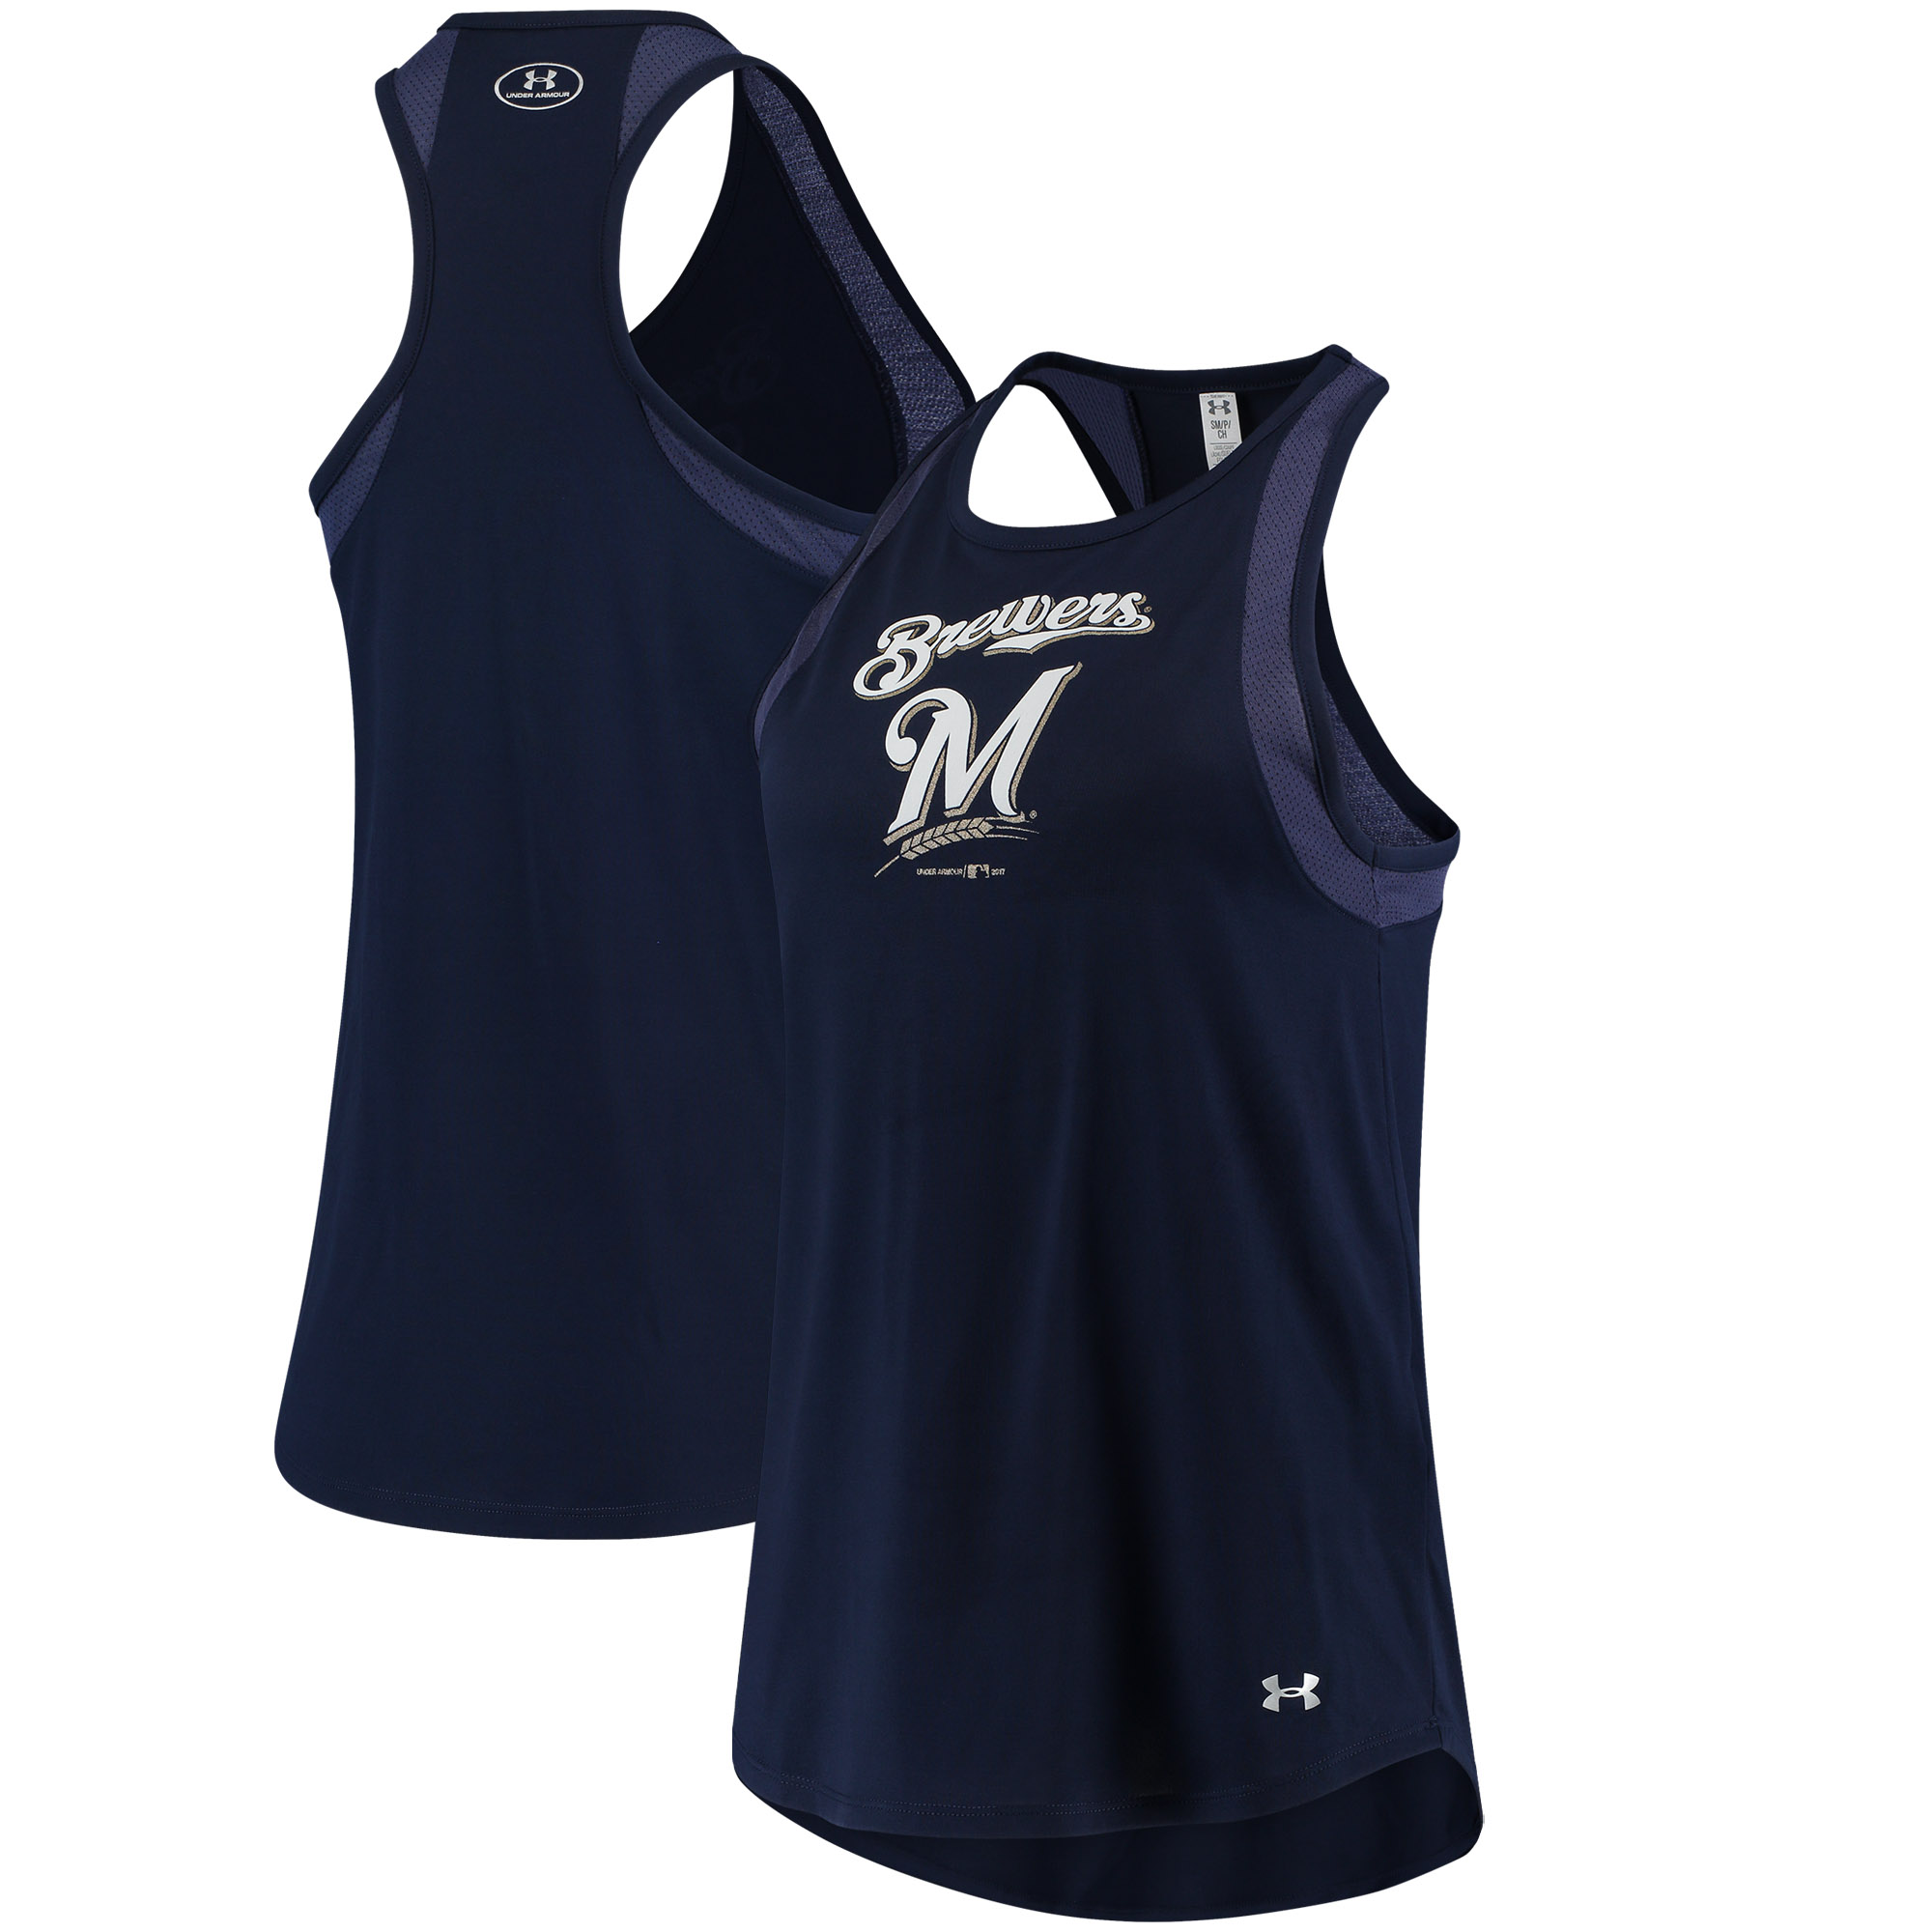 Milwaukee Brewers Under Armour Women's Pointelle Mesh Performance Tank Top Navy by Gear For Sports/Under Armour